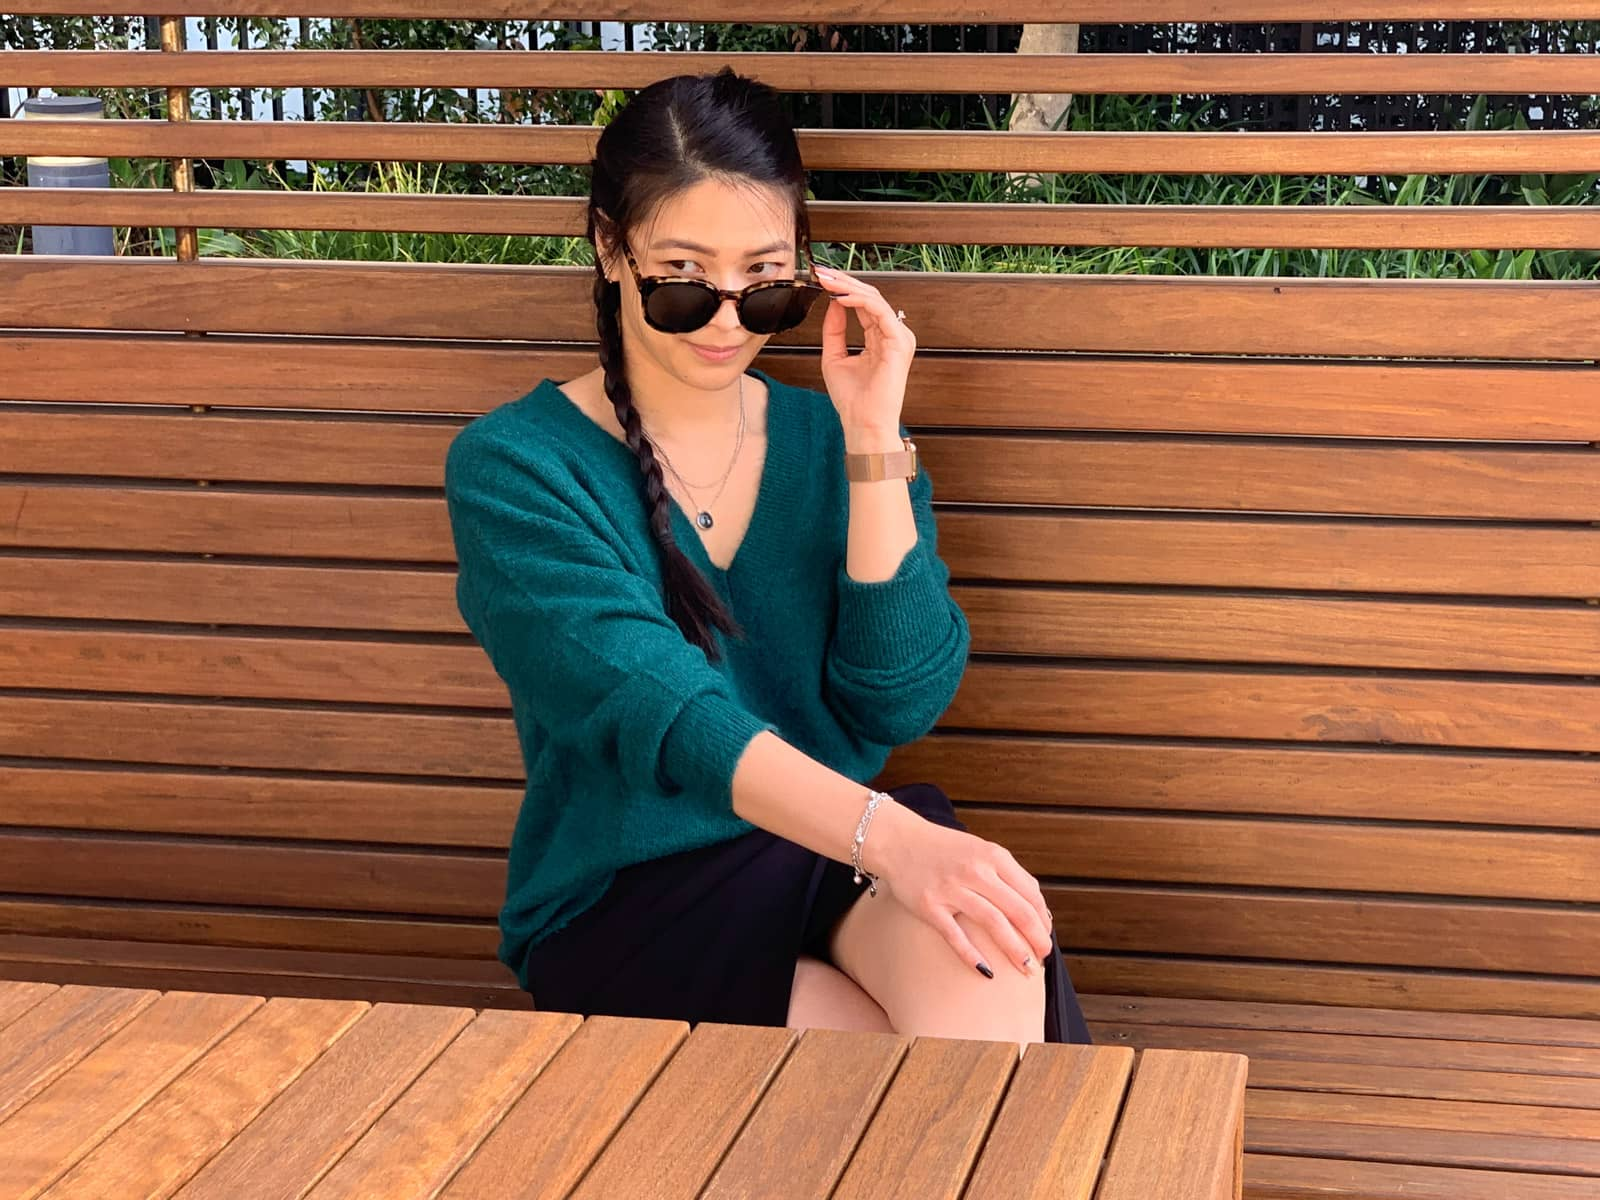 A woman with long dark hair, wearing a green sweater and black skirt, sitting in a wooden cabana, behind a wooden table. She has a braid over one of her shoulders. One of her hands rests on her knee, which is crossed over the other. Her other hand is raised to her sunglasses which are partially obscuring her face